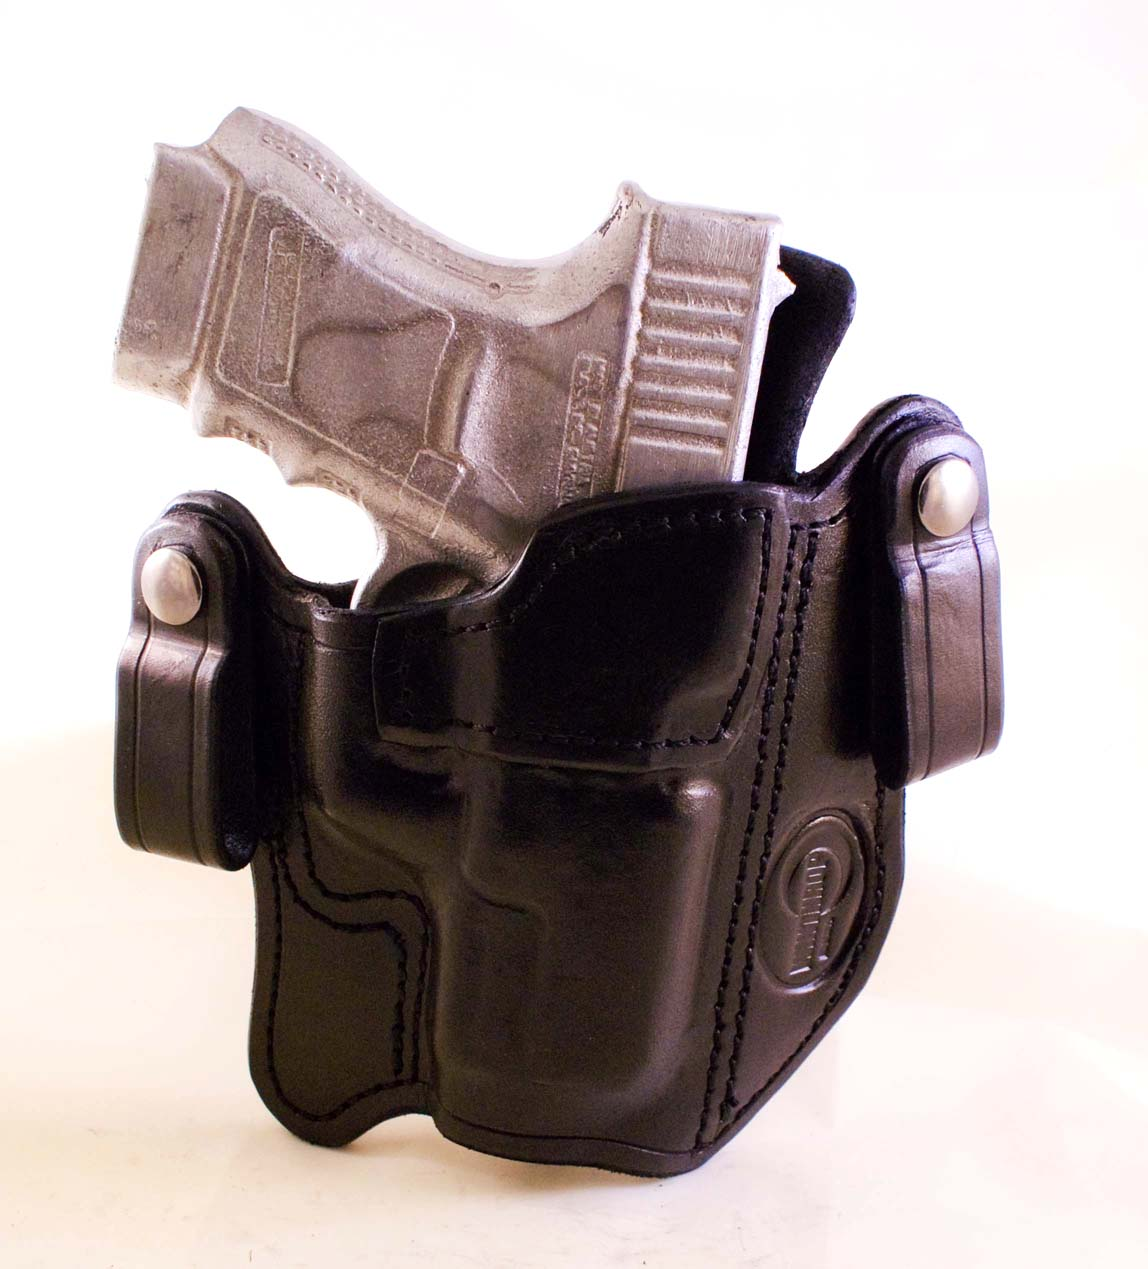 Glock 30 Dual Snaps and Reinforced MouthGlock 30 Holster Leather